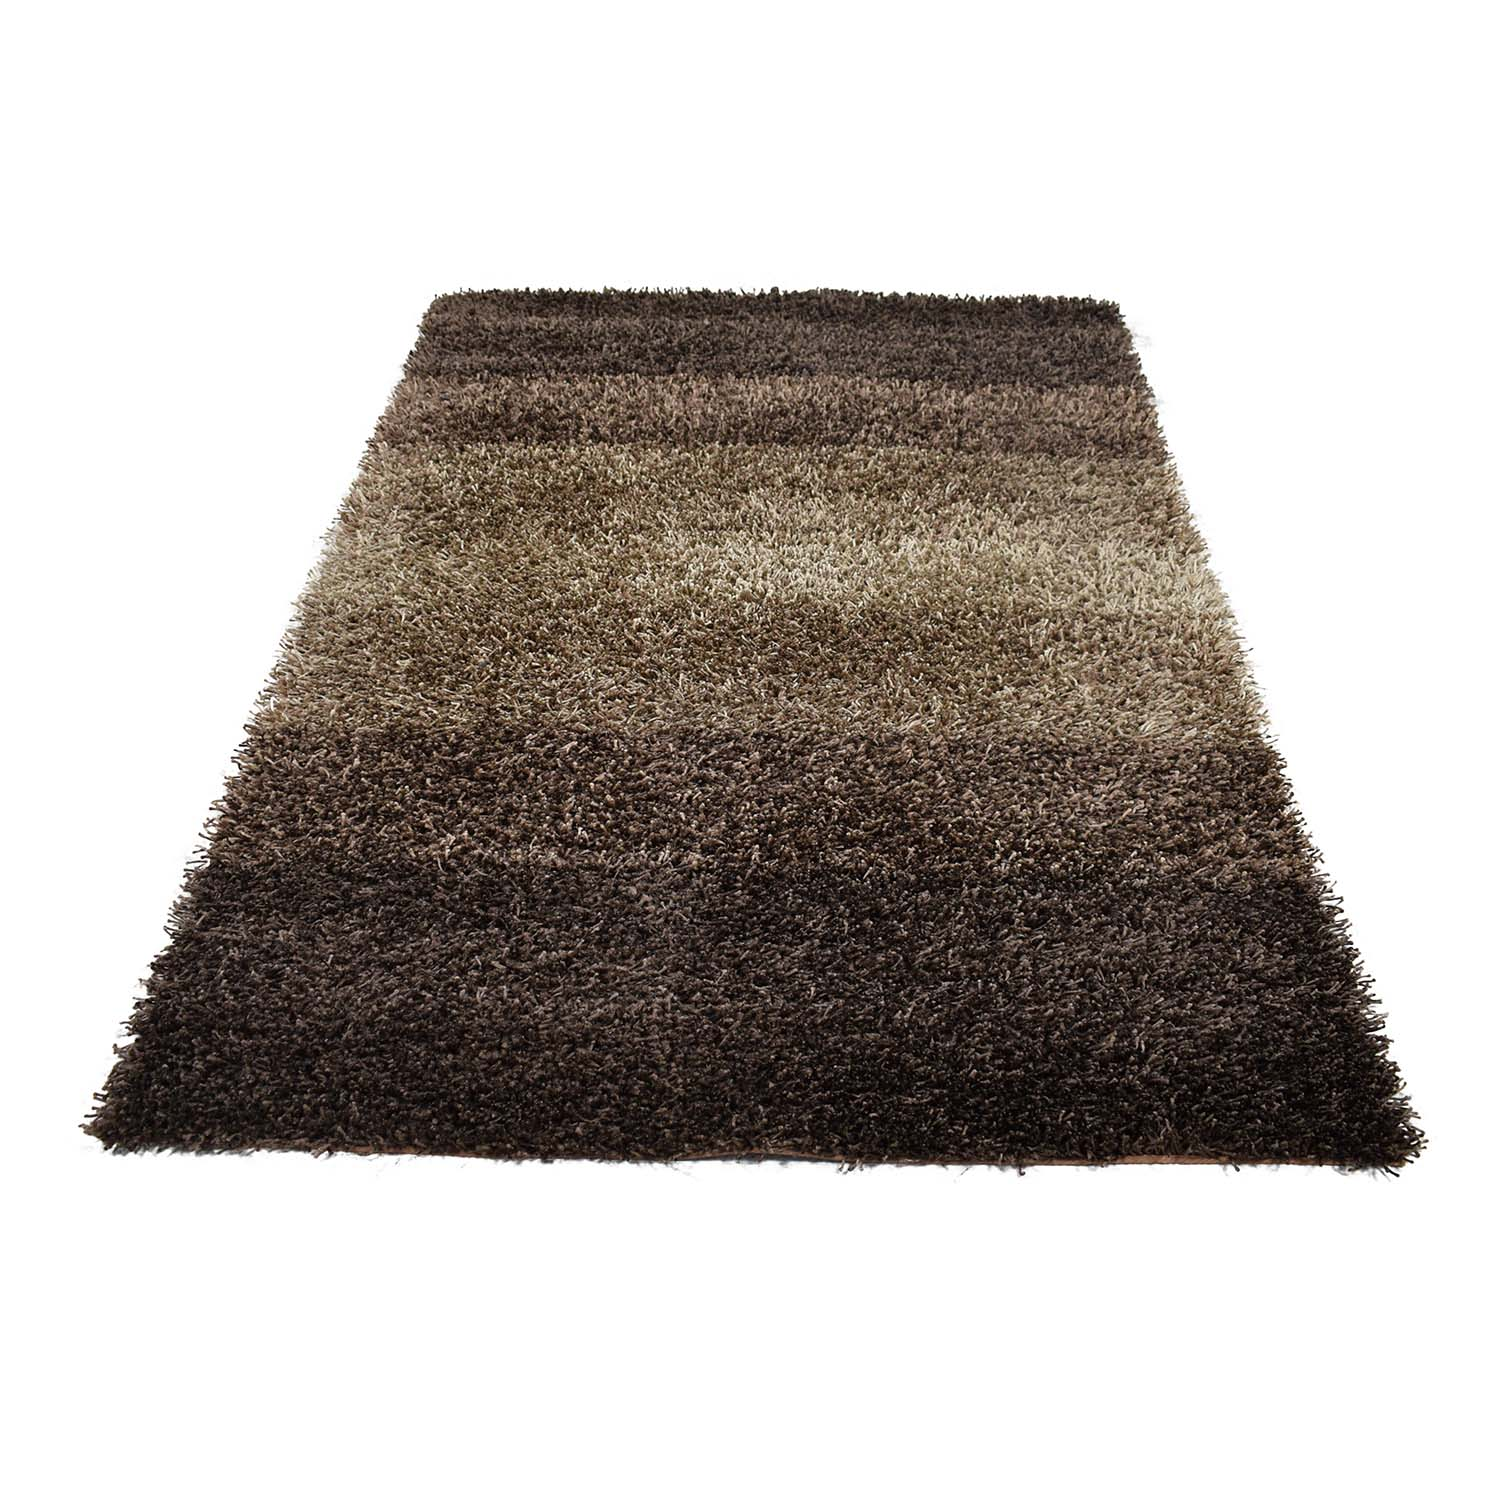 Spectrum Brown Shag Rug sale